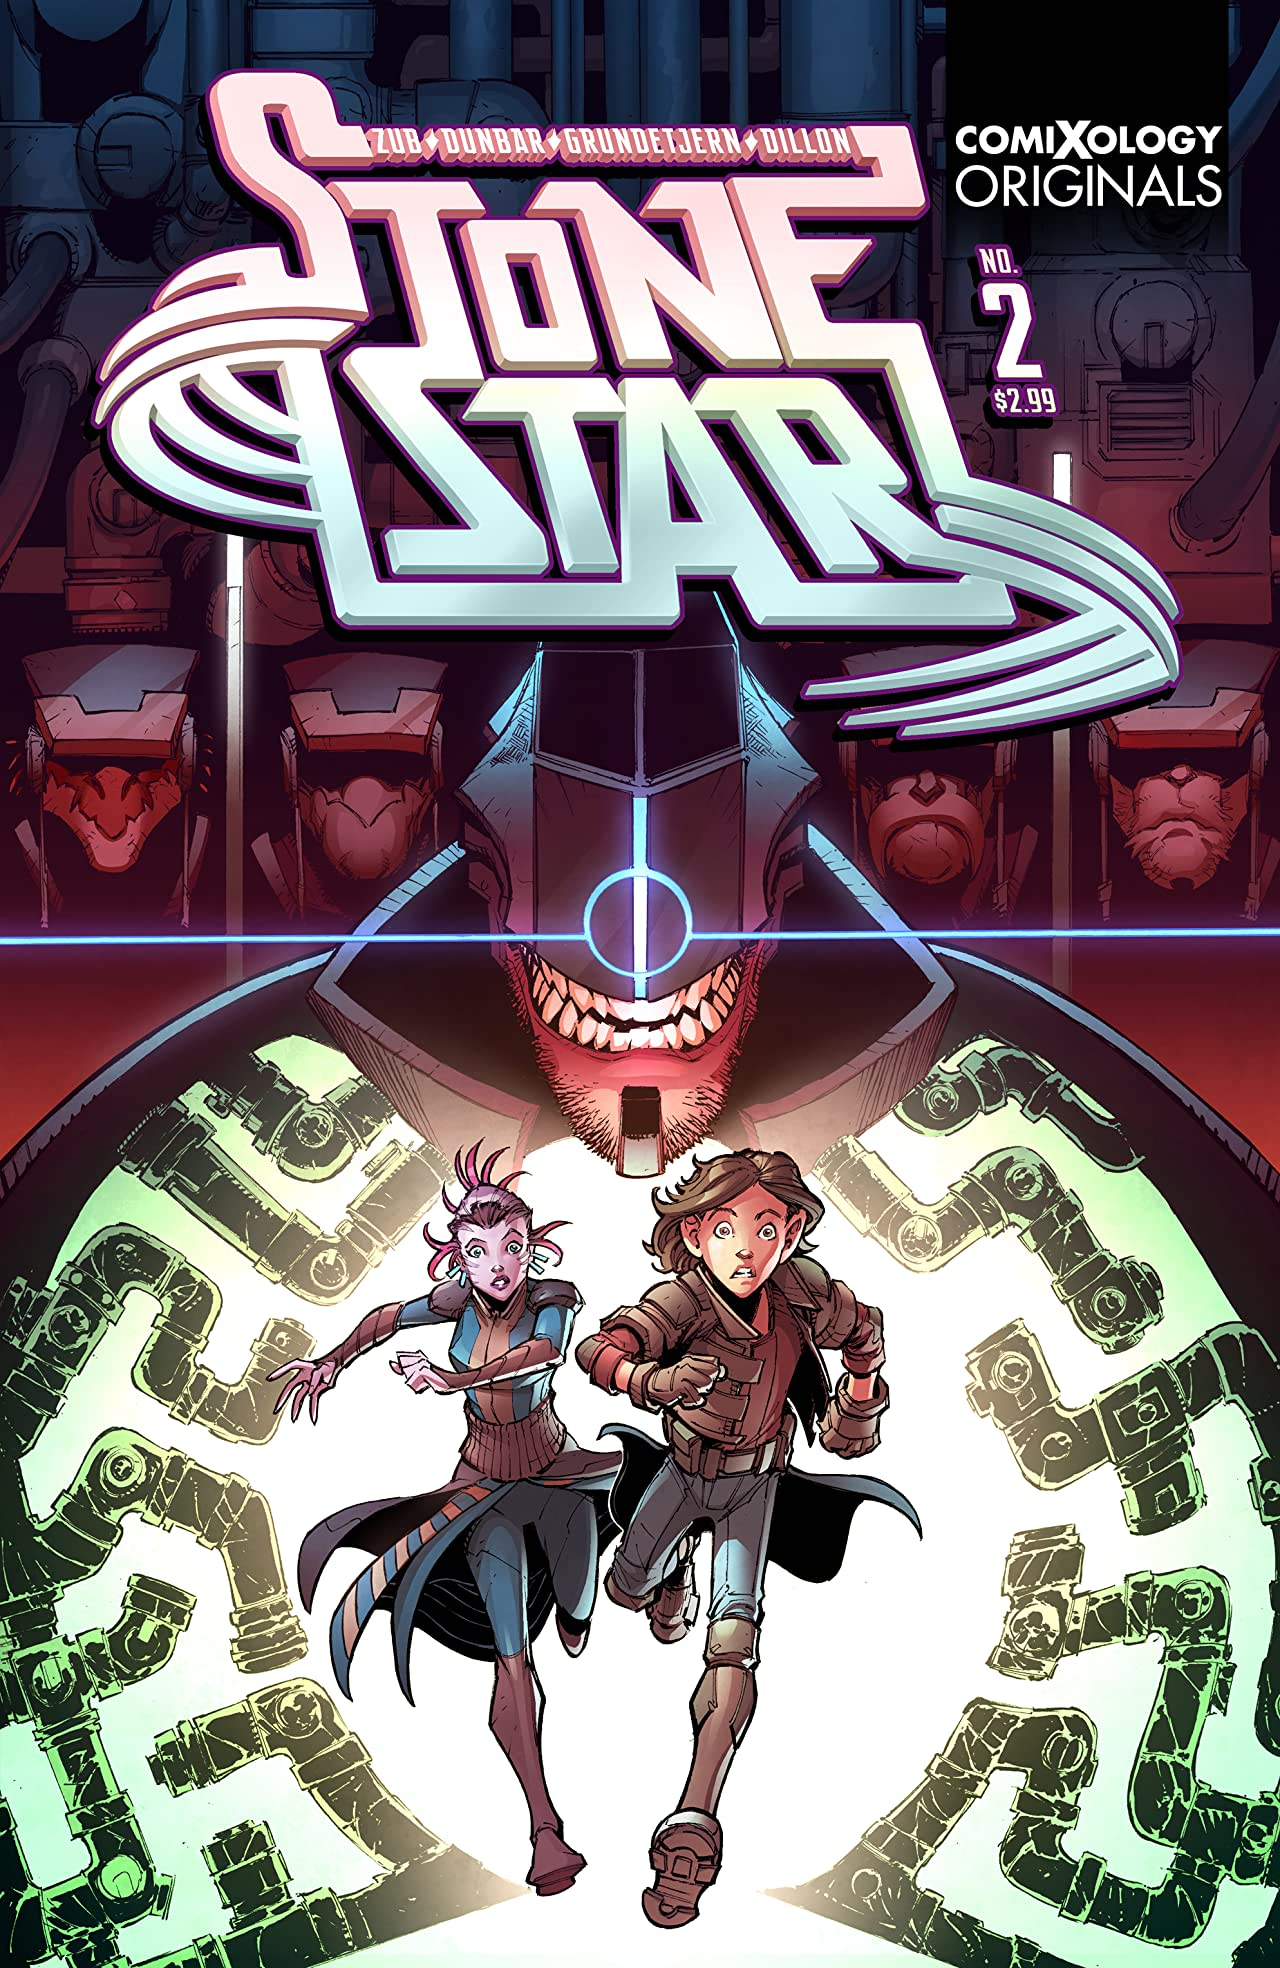 Stone Star (comiXology Originals) #2 (of 5)